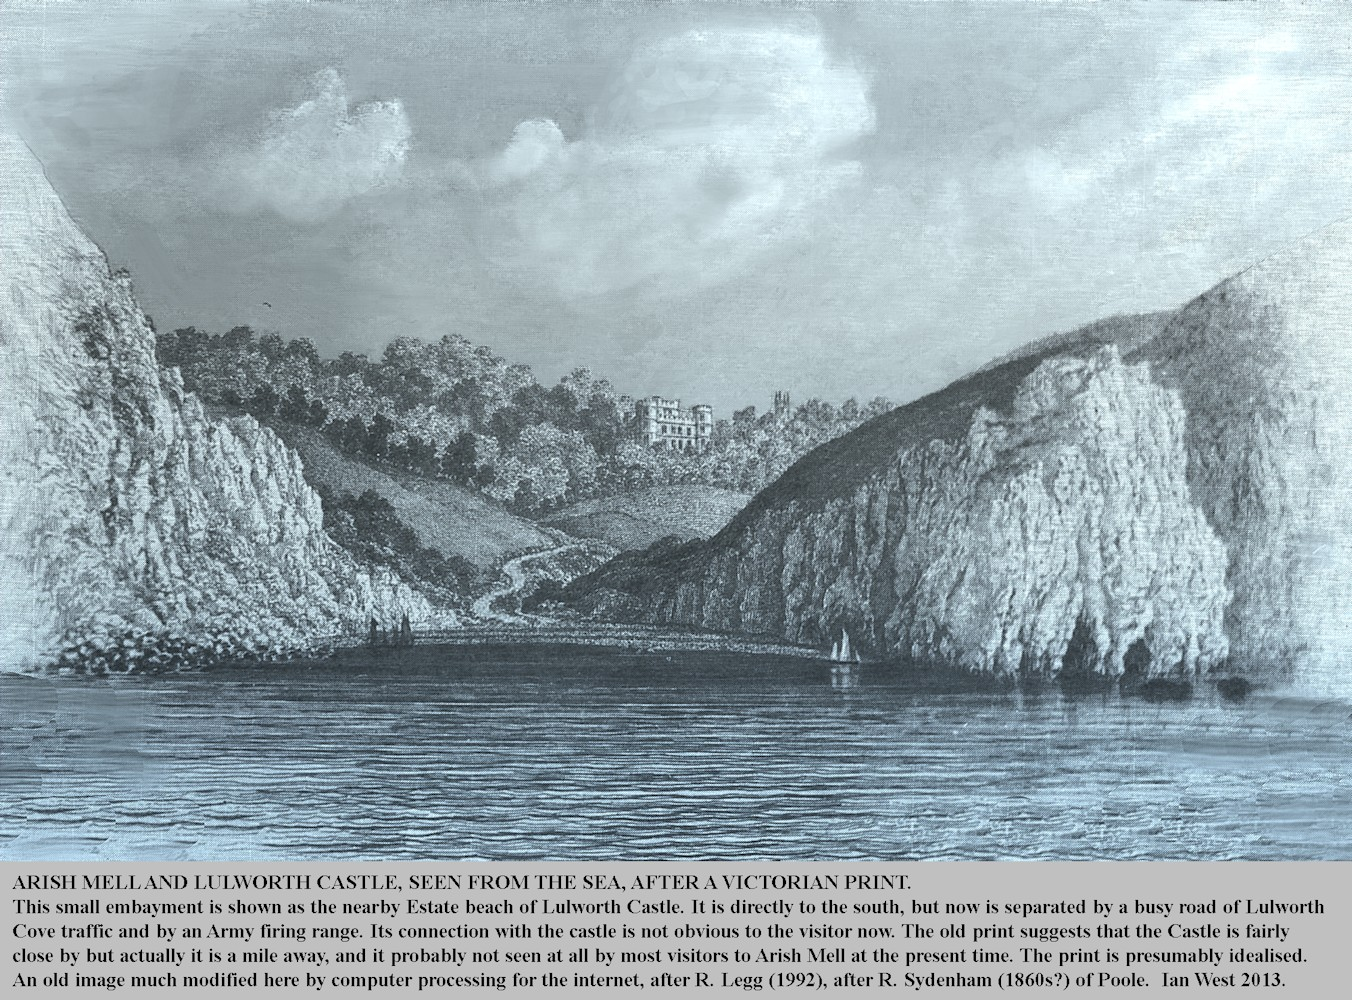 A Victorian print of Arish Mell, Lulworth, Dorset, originally somewhat idealised, and now modified for the computer